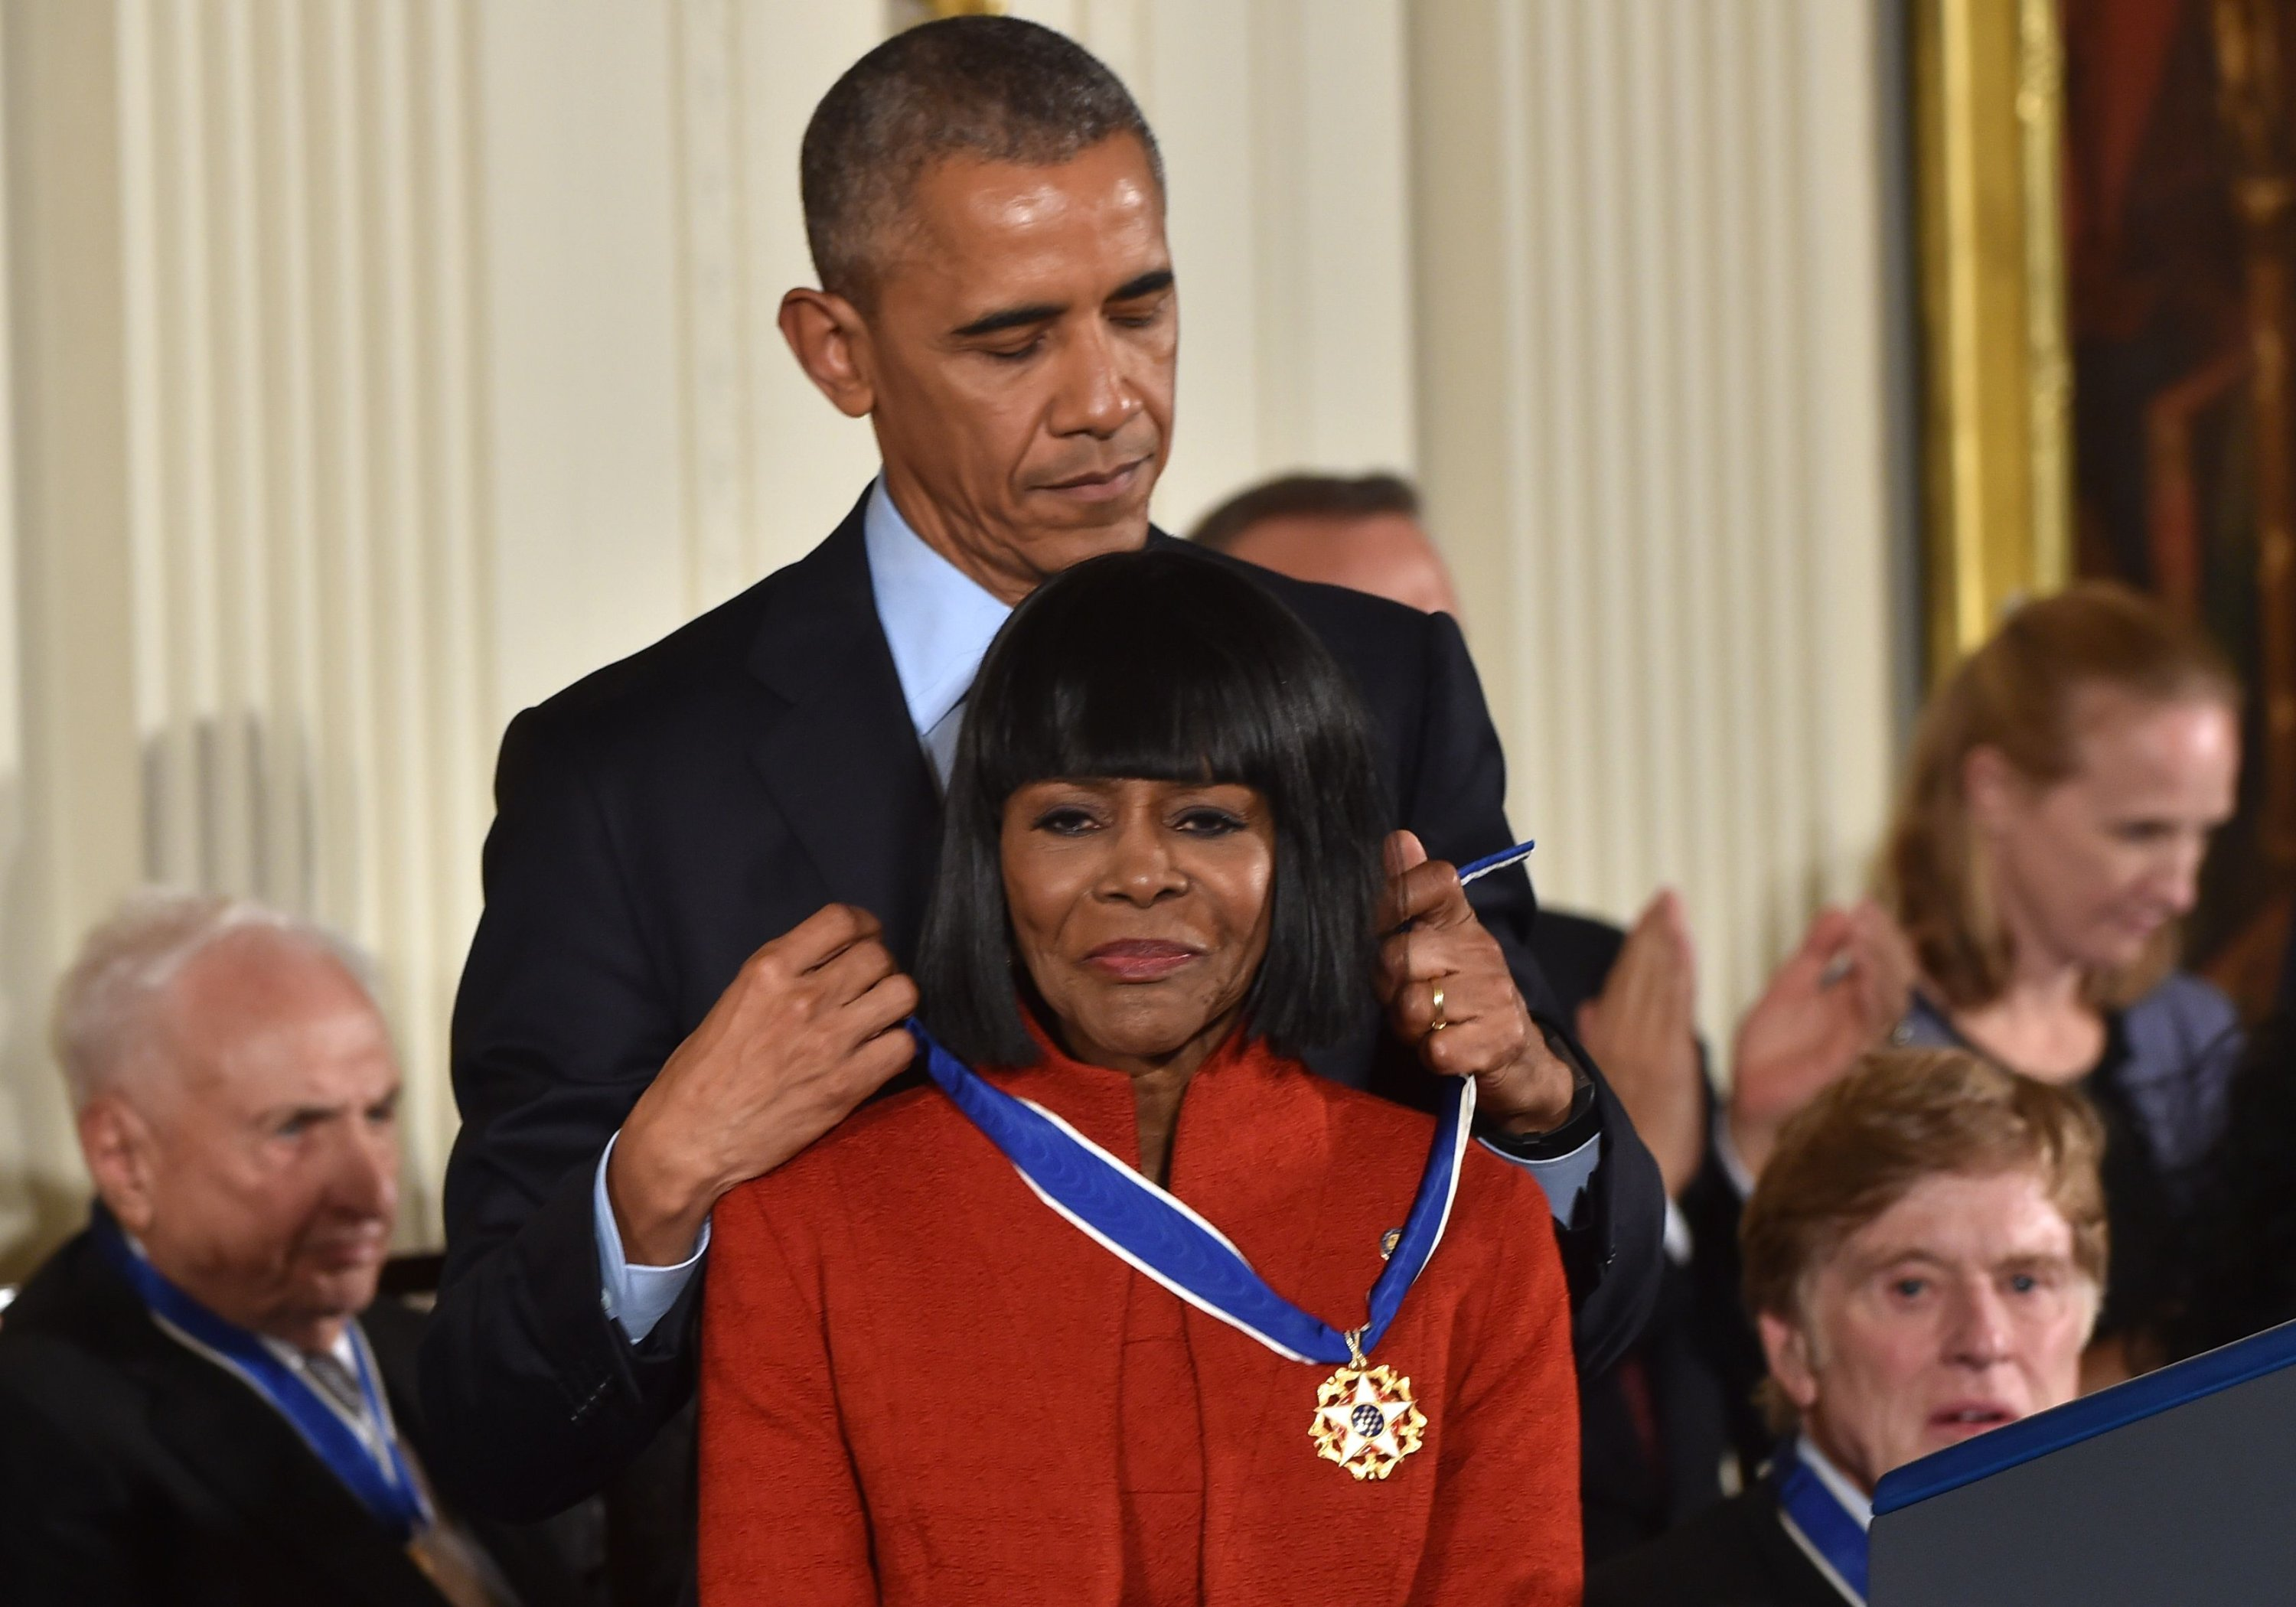 U.S. President Barack Obama presents actress Cicely Tyson with the Presidential Medal of Freedom, the nation's highest civilian honor, during a ceremony honoring 21 recipients, in the East Room of the White House in Washington, D.C., U.S., Nov. 22, 2016. (AFP Photo)